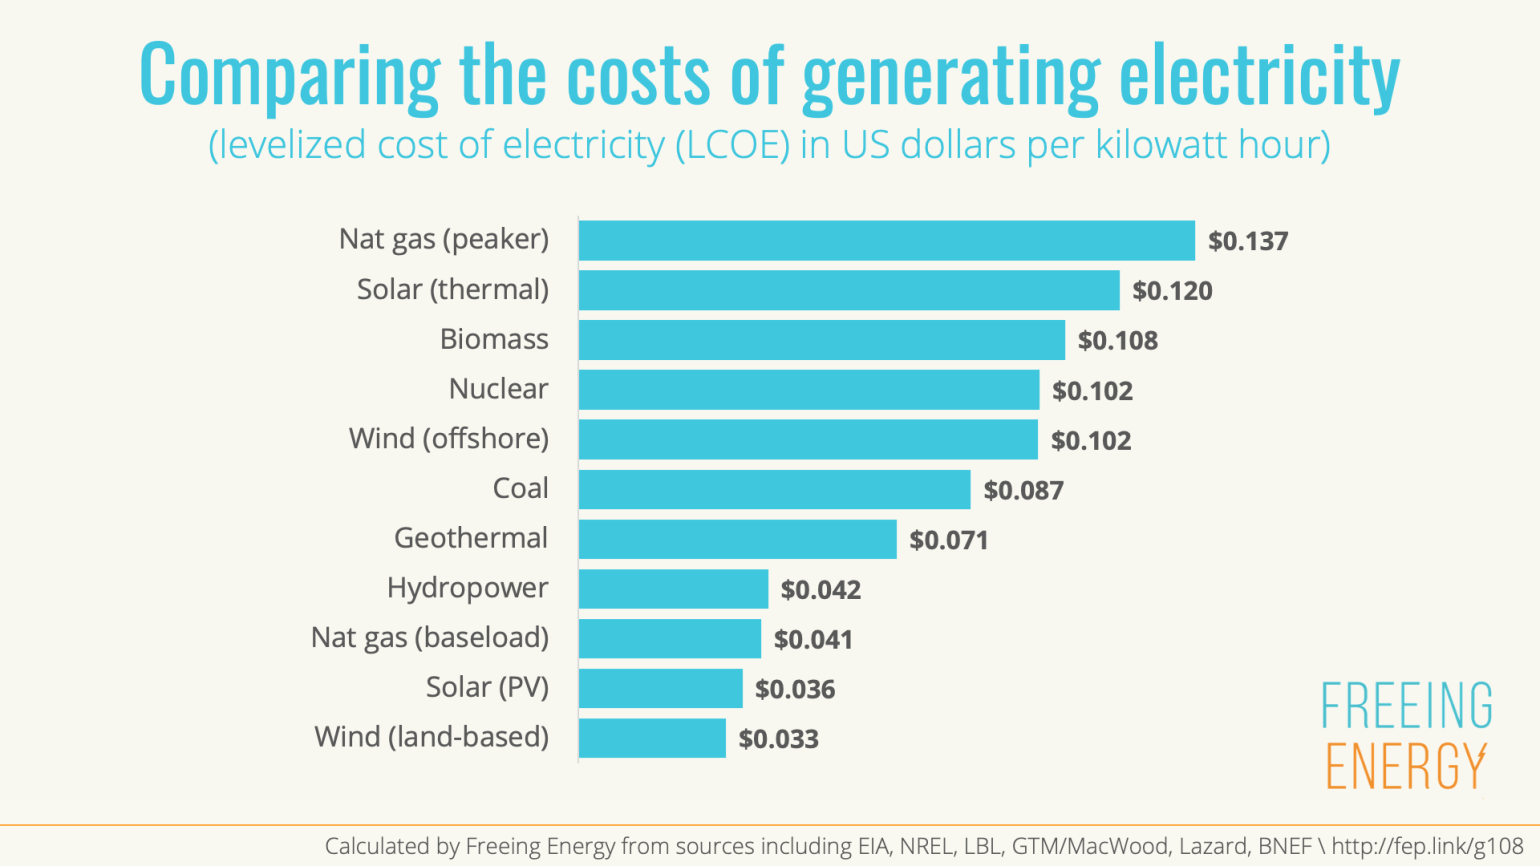 Renewables generally have a lower cost of generating electricity than traditional energy sources